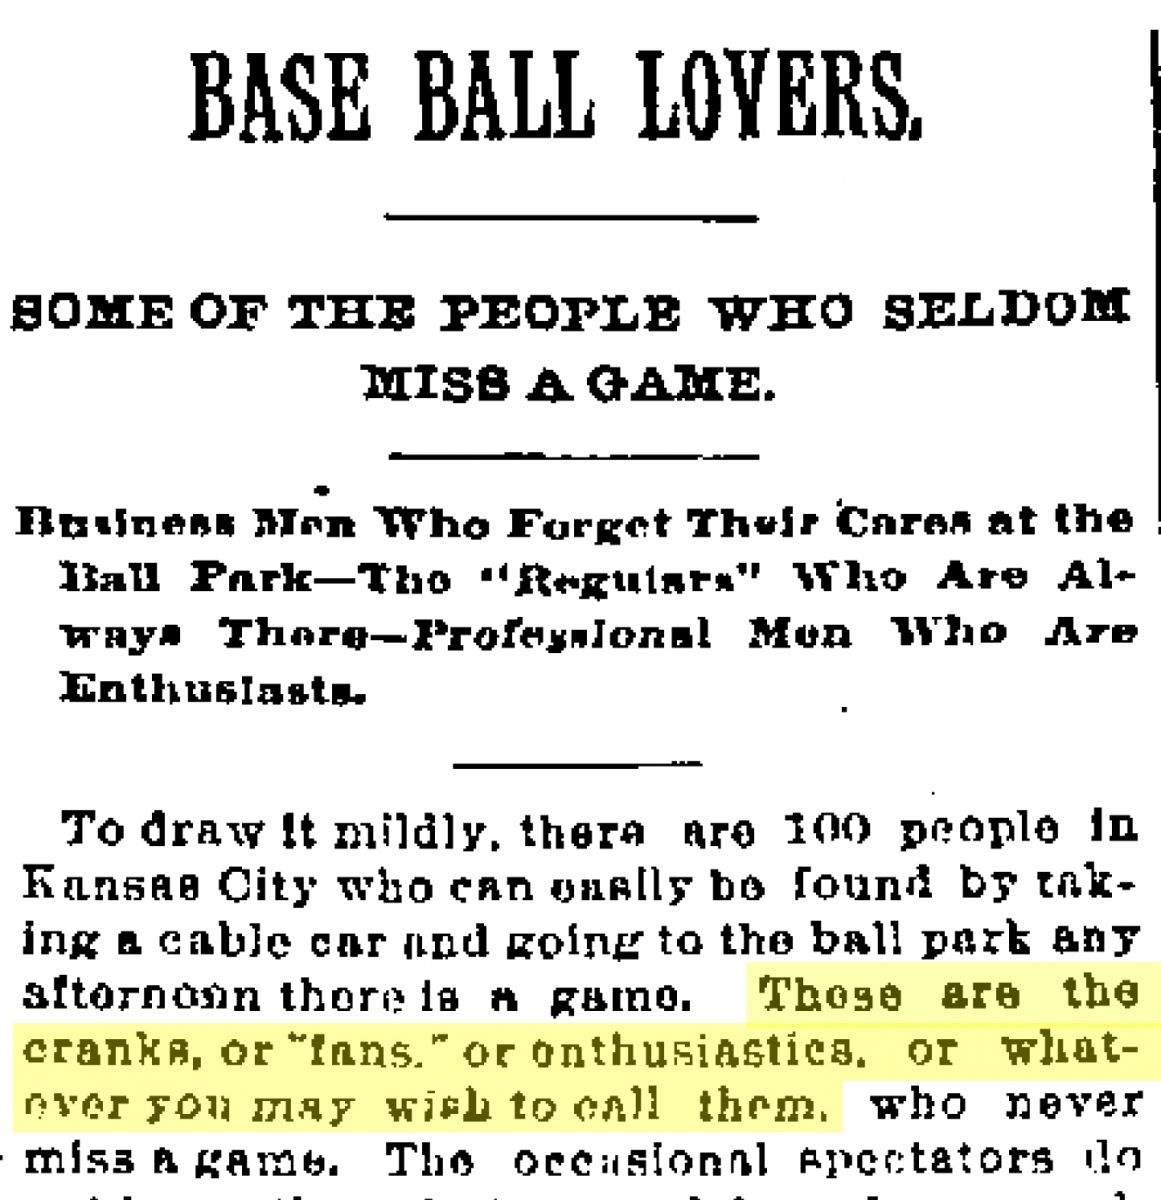 Image of Kansas City Times article, May 30, 1887 with the headline Base Ball Lovers.